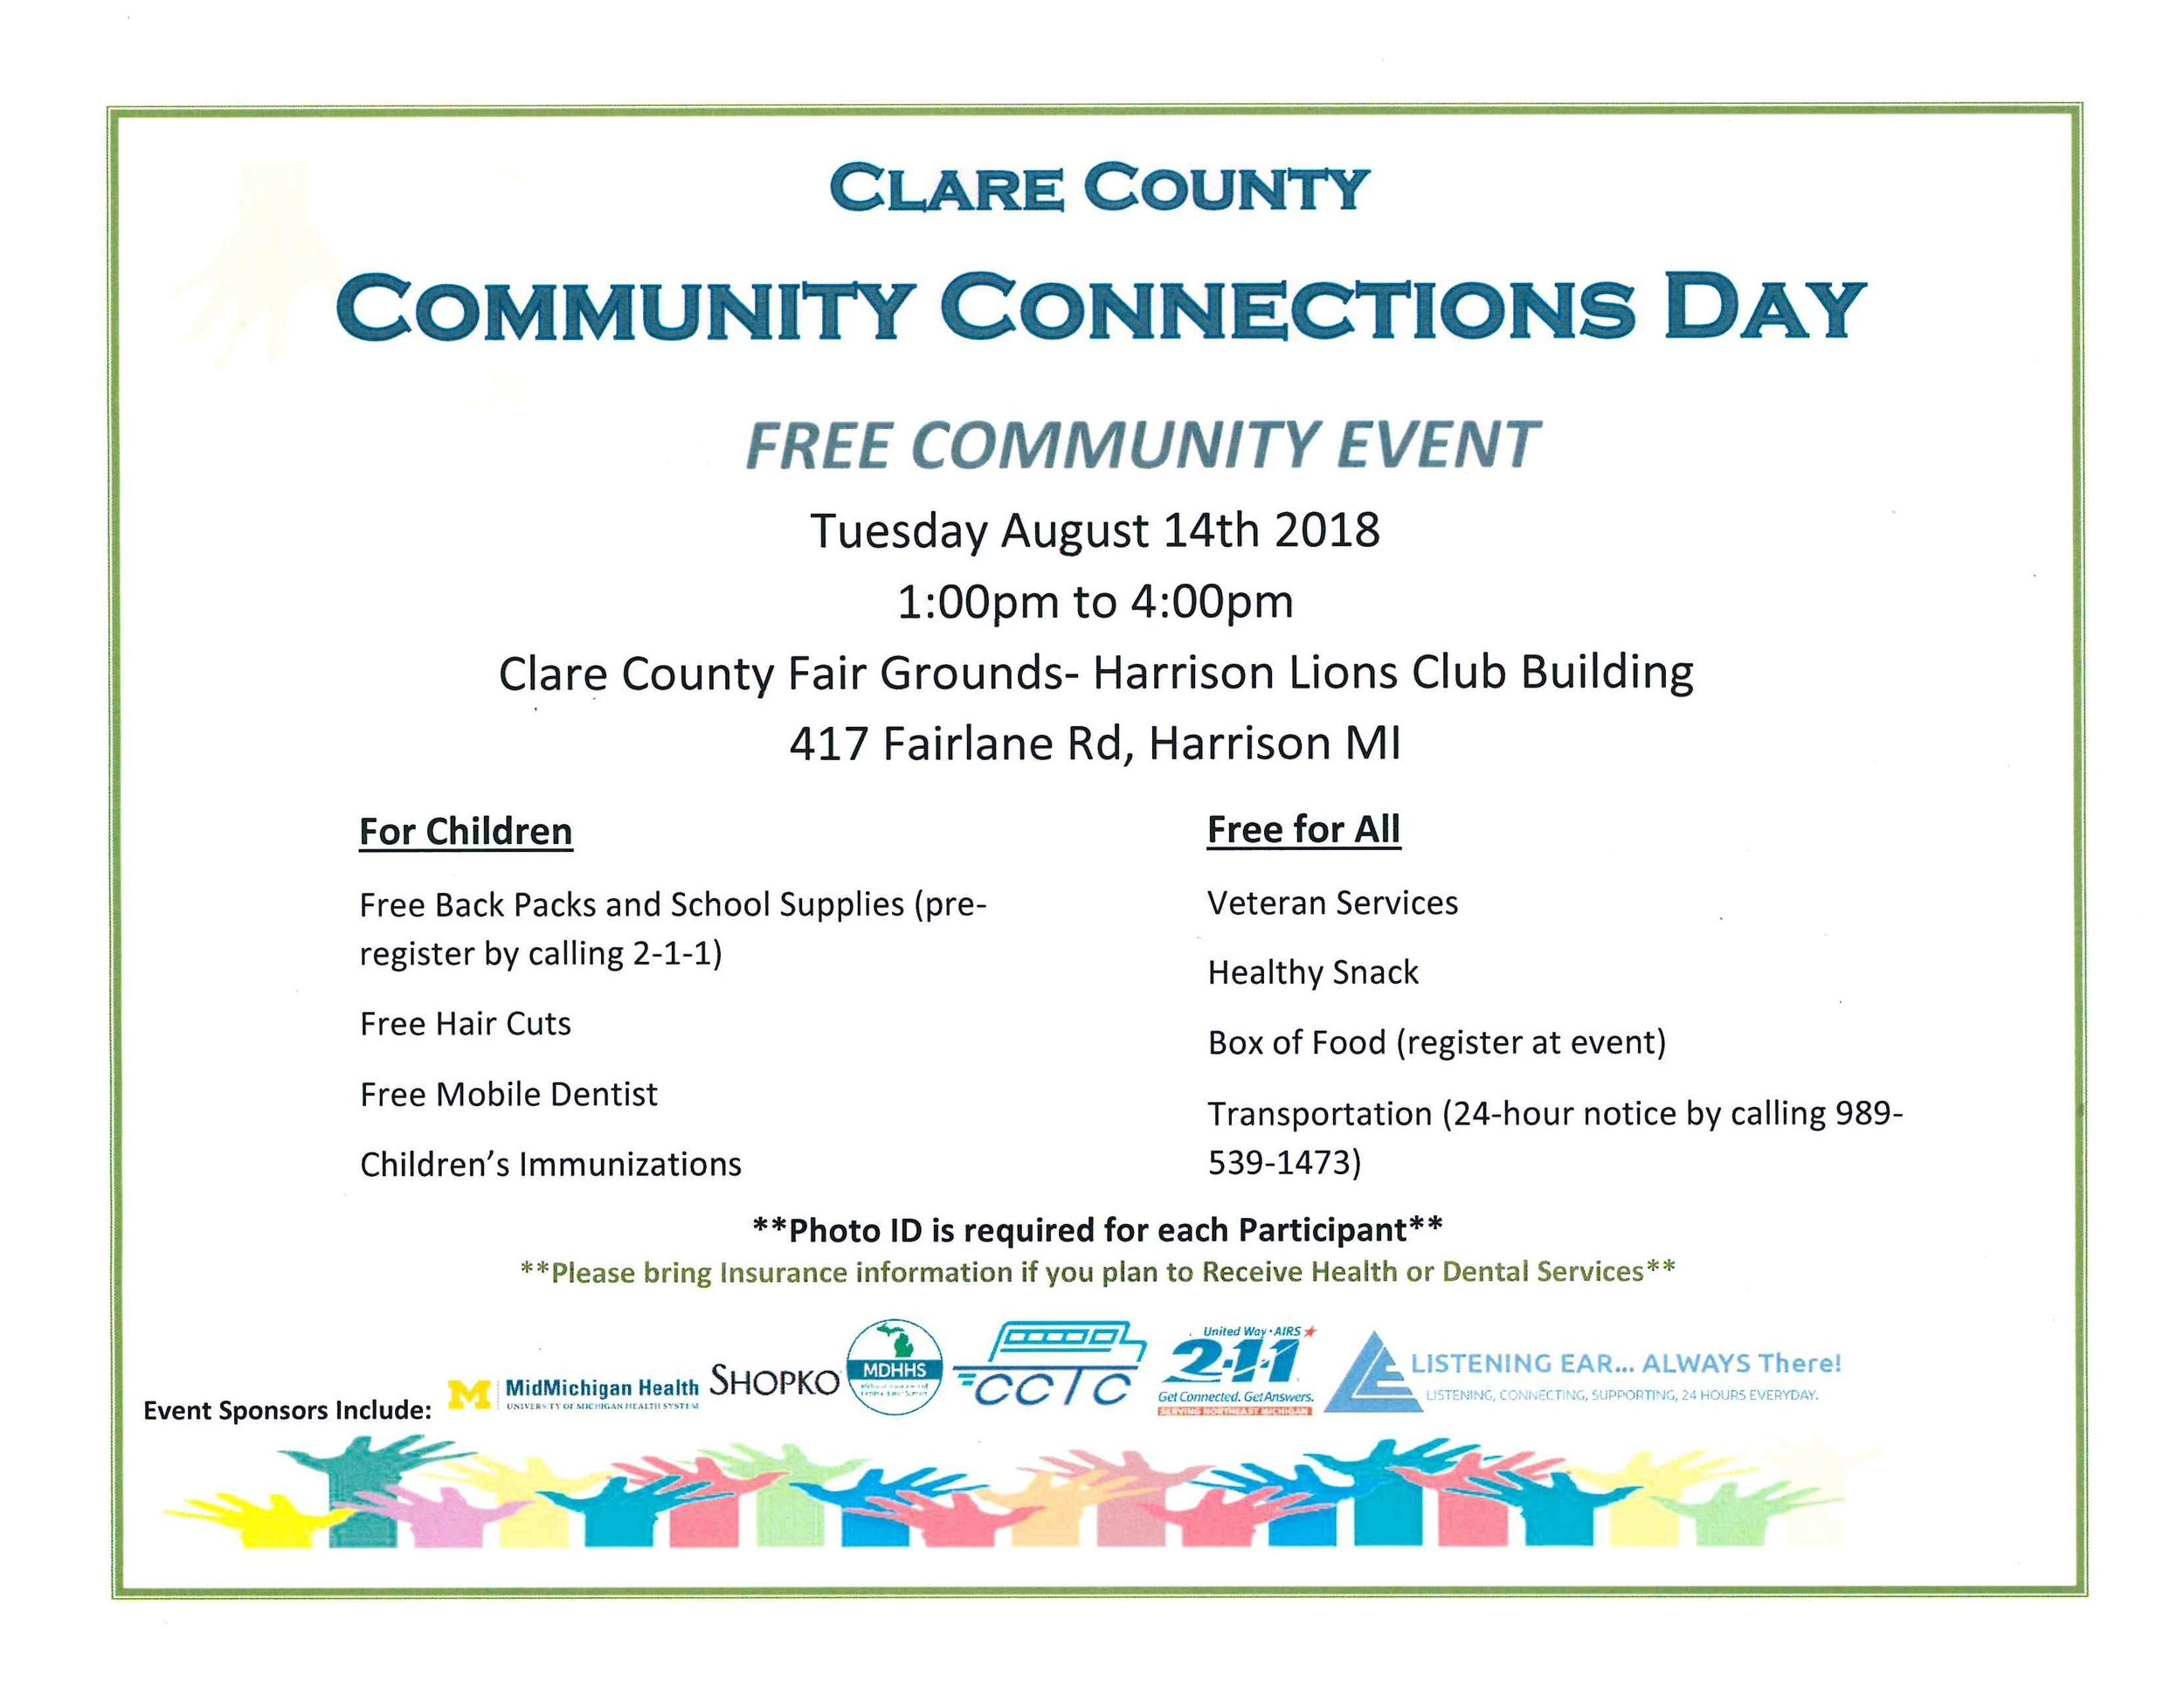 Clare County Community Connection Day.jpg